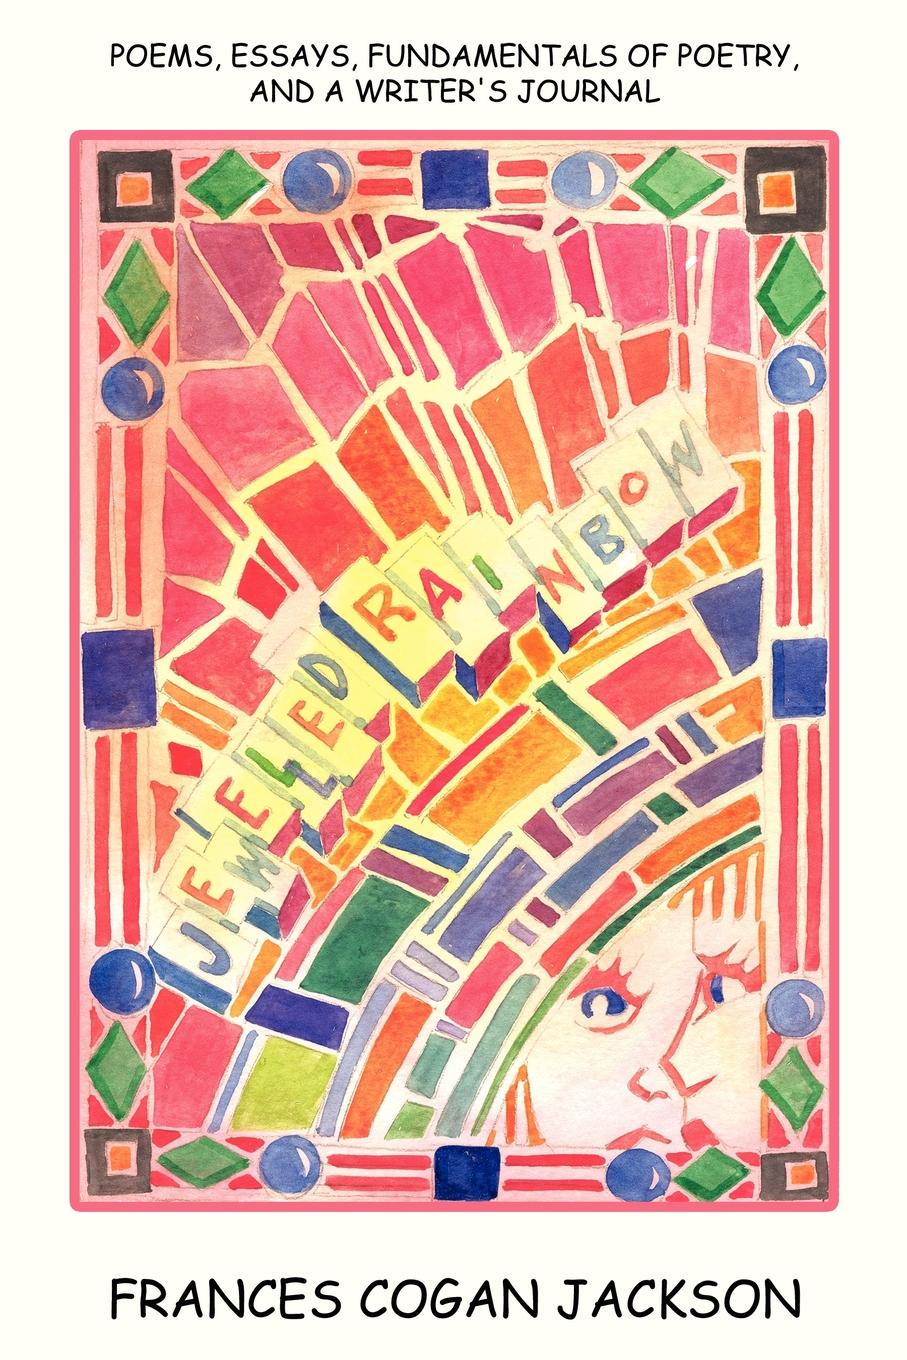 FRANCES COGAN JACKSON JEWELLED RAINBOW. POEMS, ESSAYS, FUNDAMENTALS OF POETRY, AND A WRITERS JOURNAL